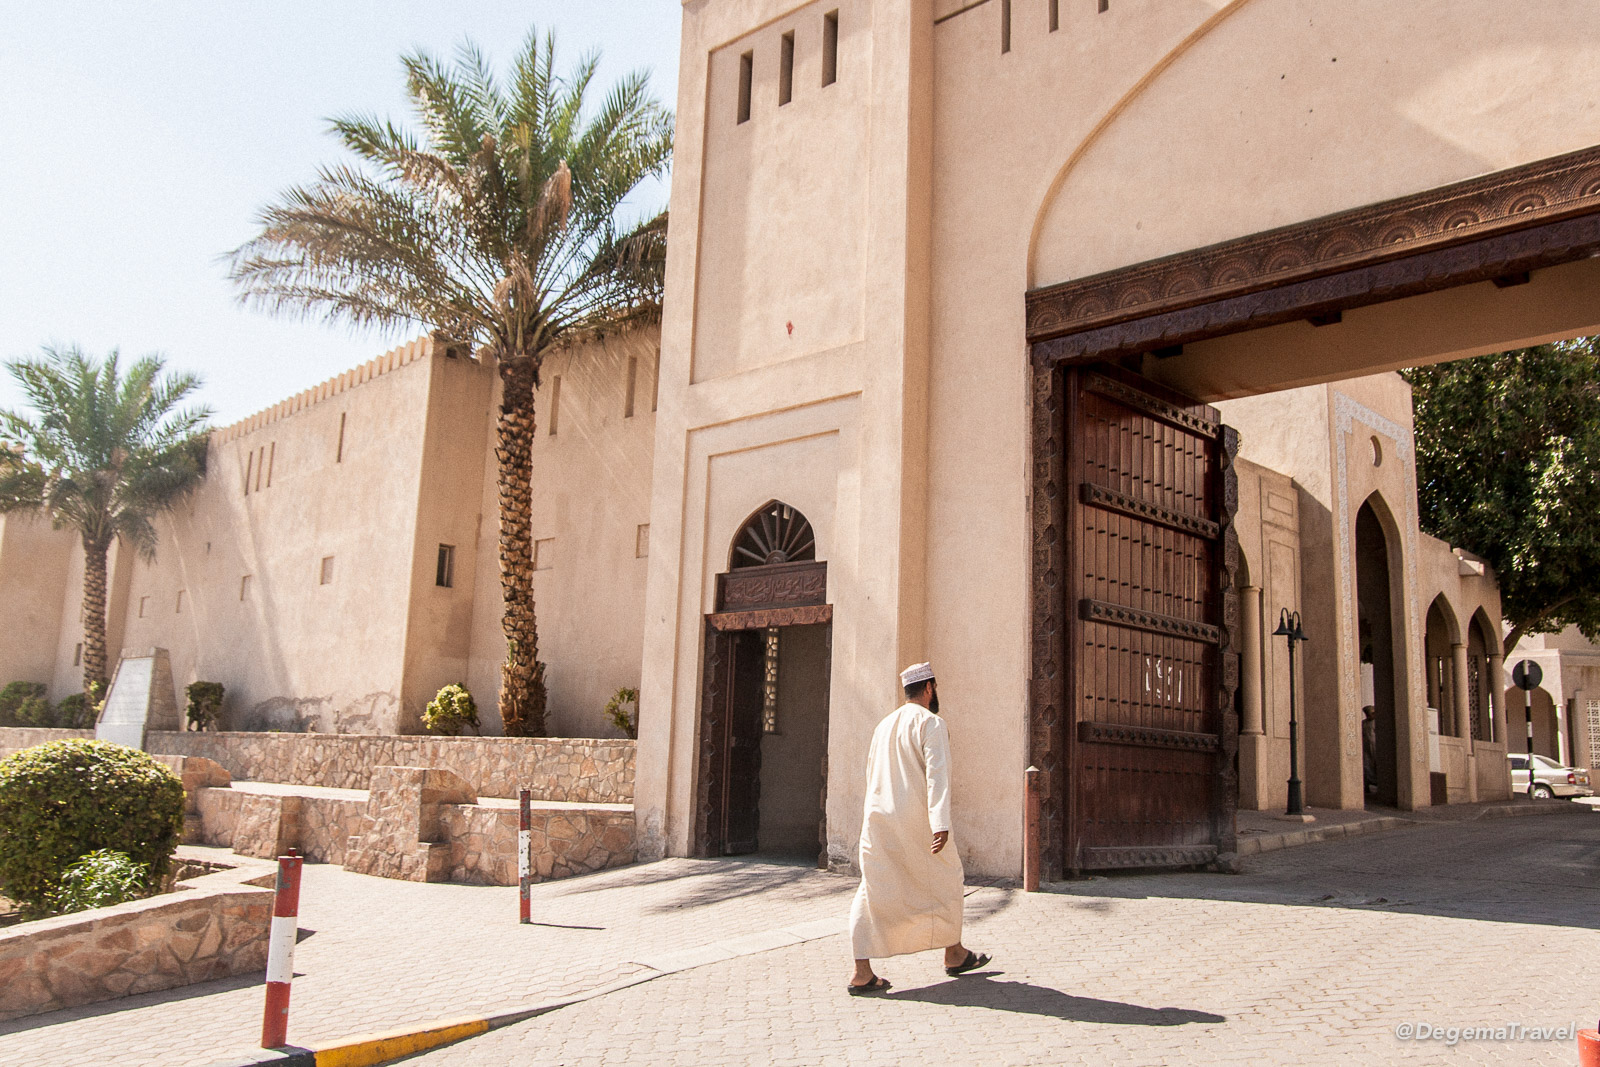 Entrance to the old part of Nizwa, Oman